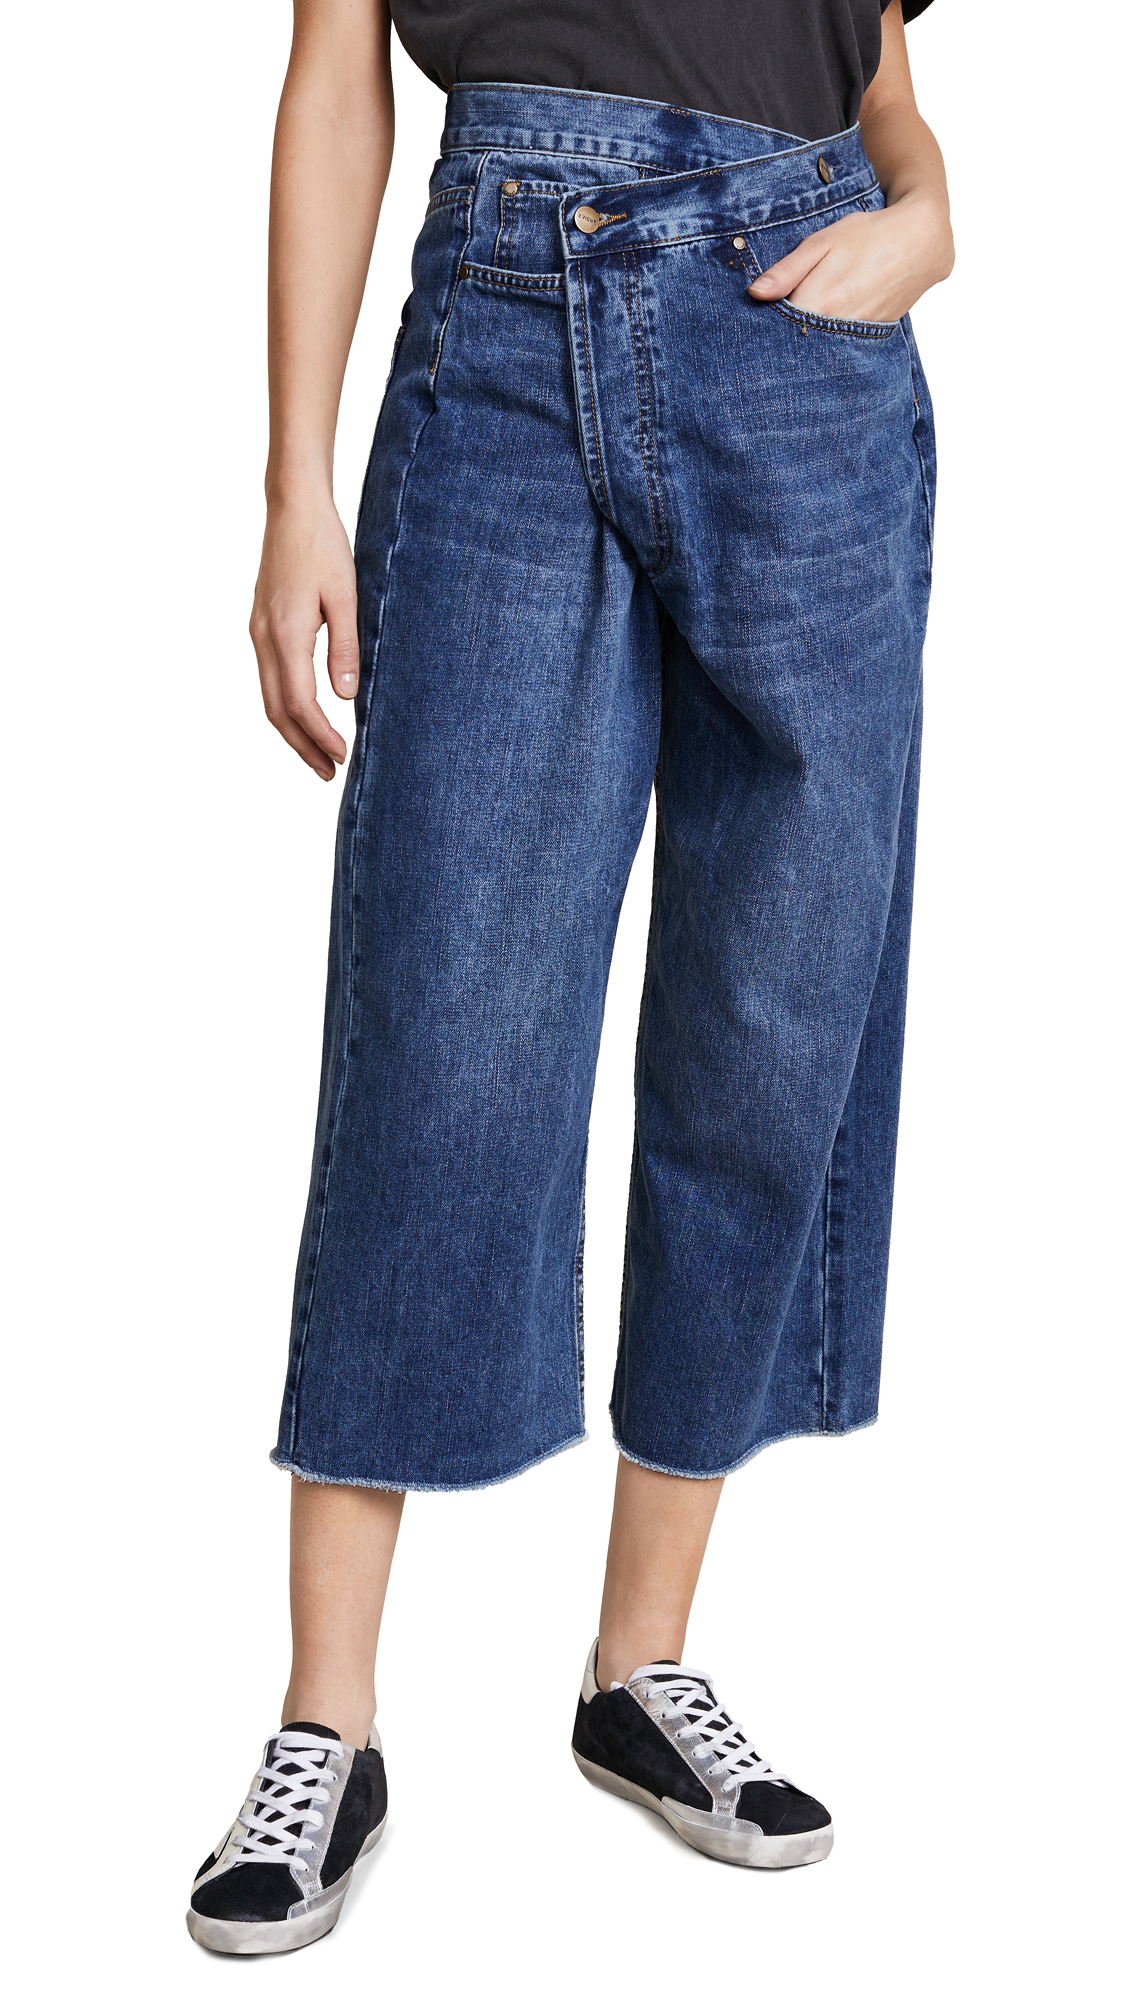 EVIDNT Nice Wide Leg Jeans In Hyperion